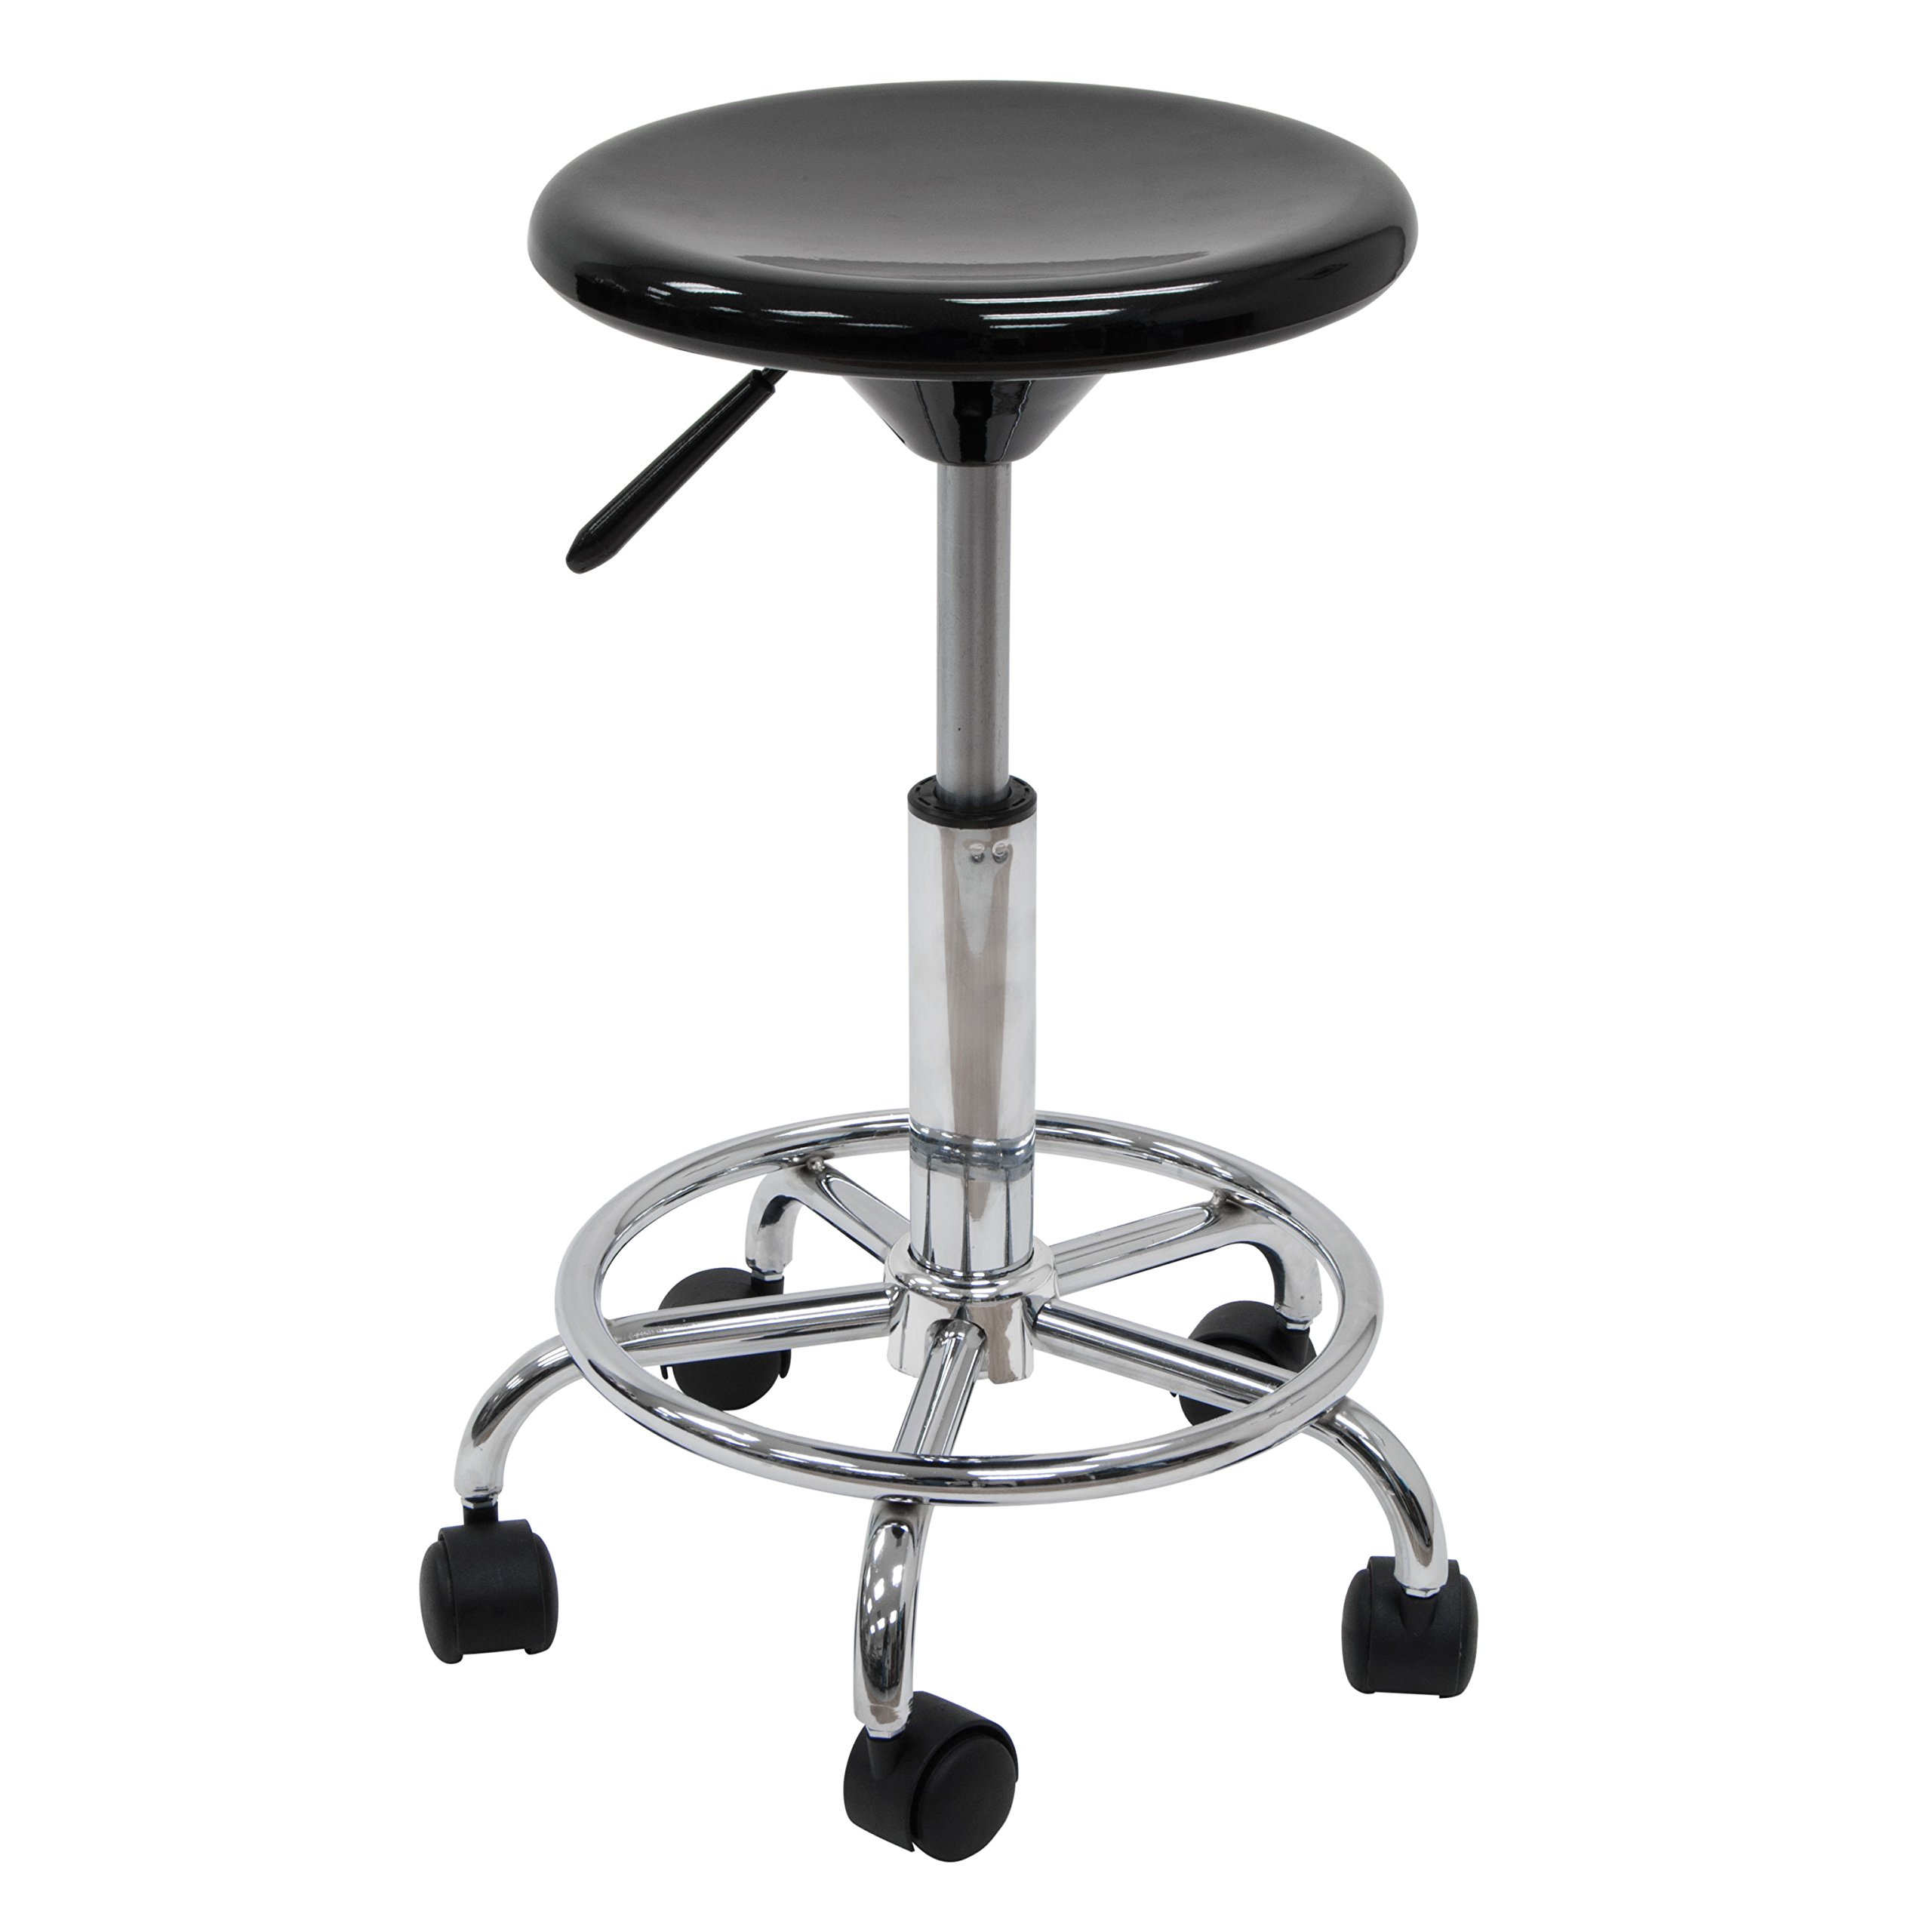 Studio Designs Studio Stool in Black with Chrome 13177